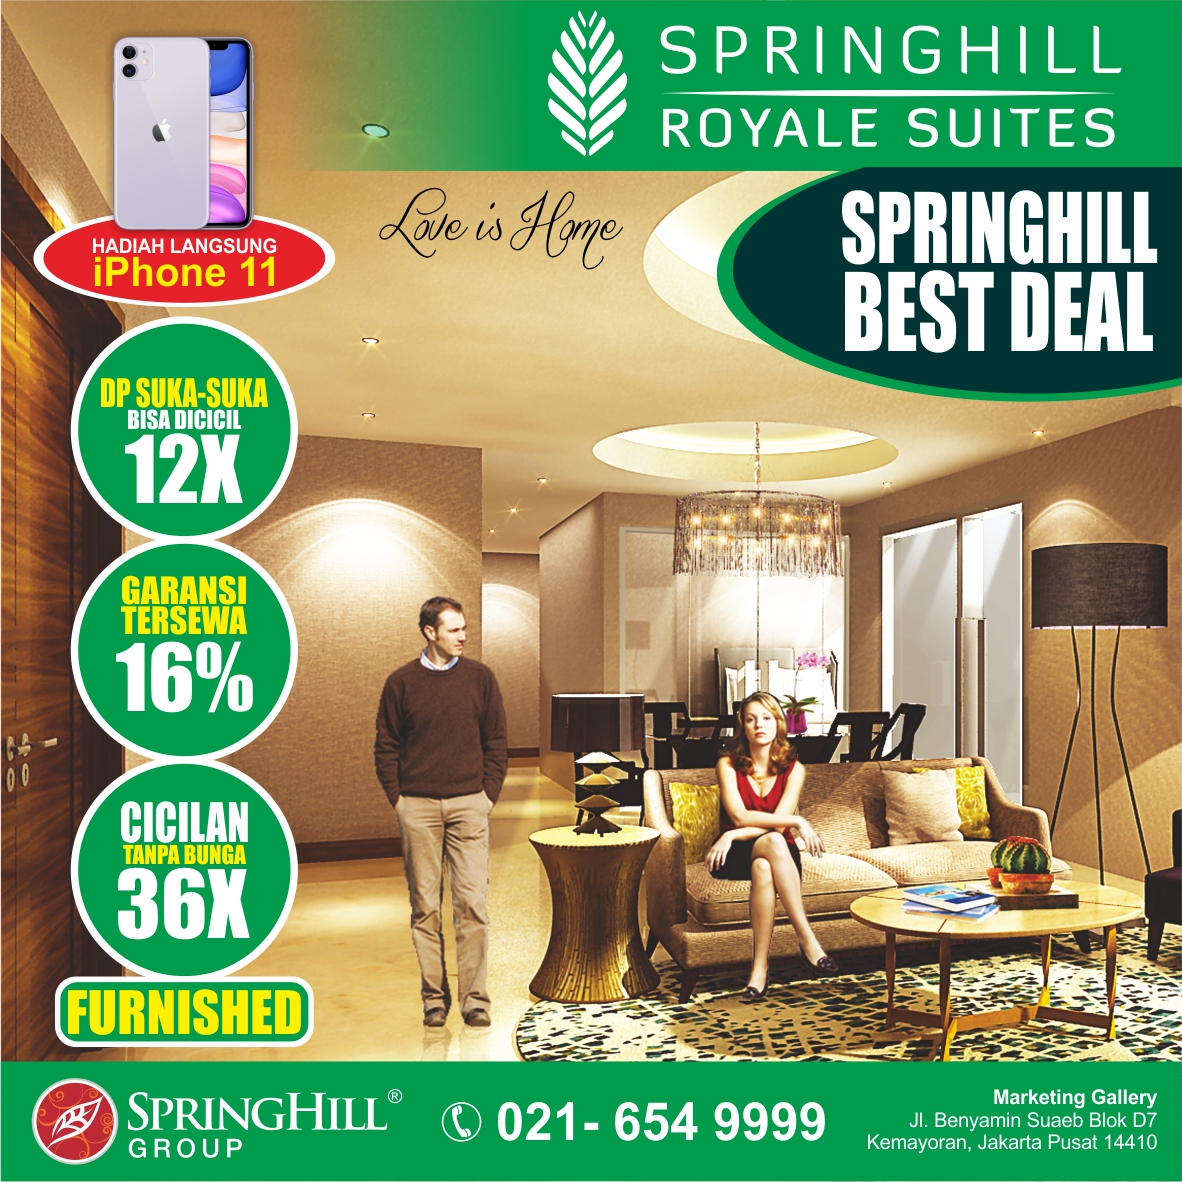 SPRINGHILL BEST DEAL